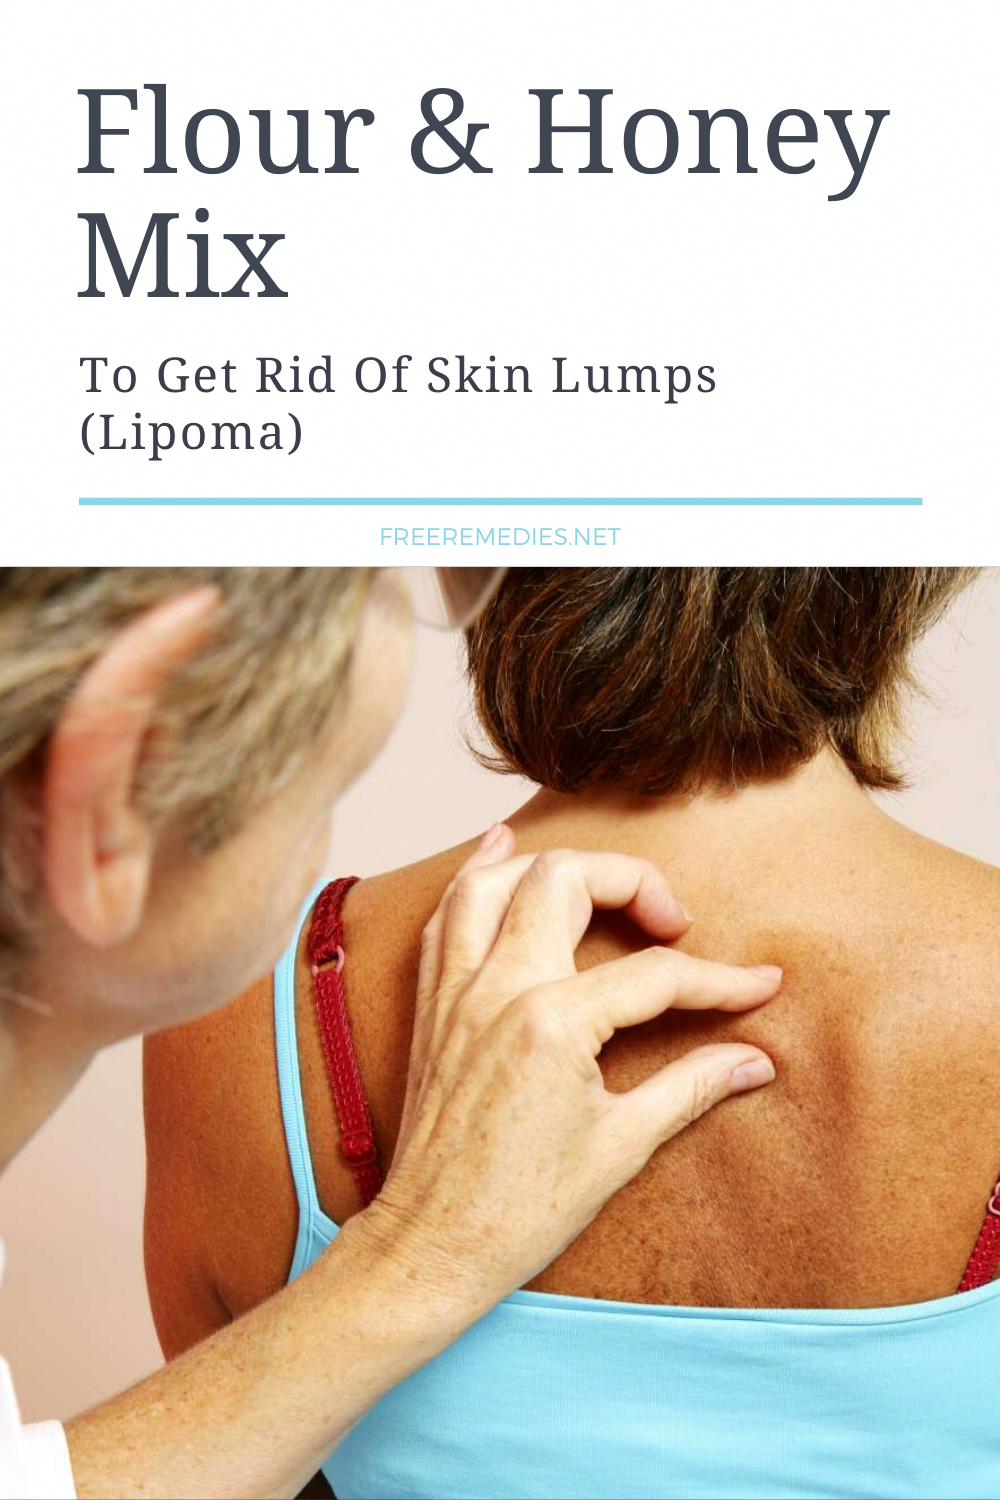 How To Get Rid Of Lump On Back Of Head